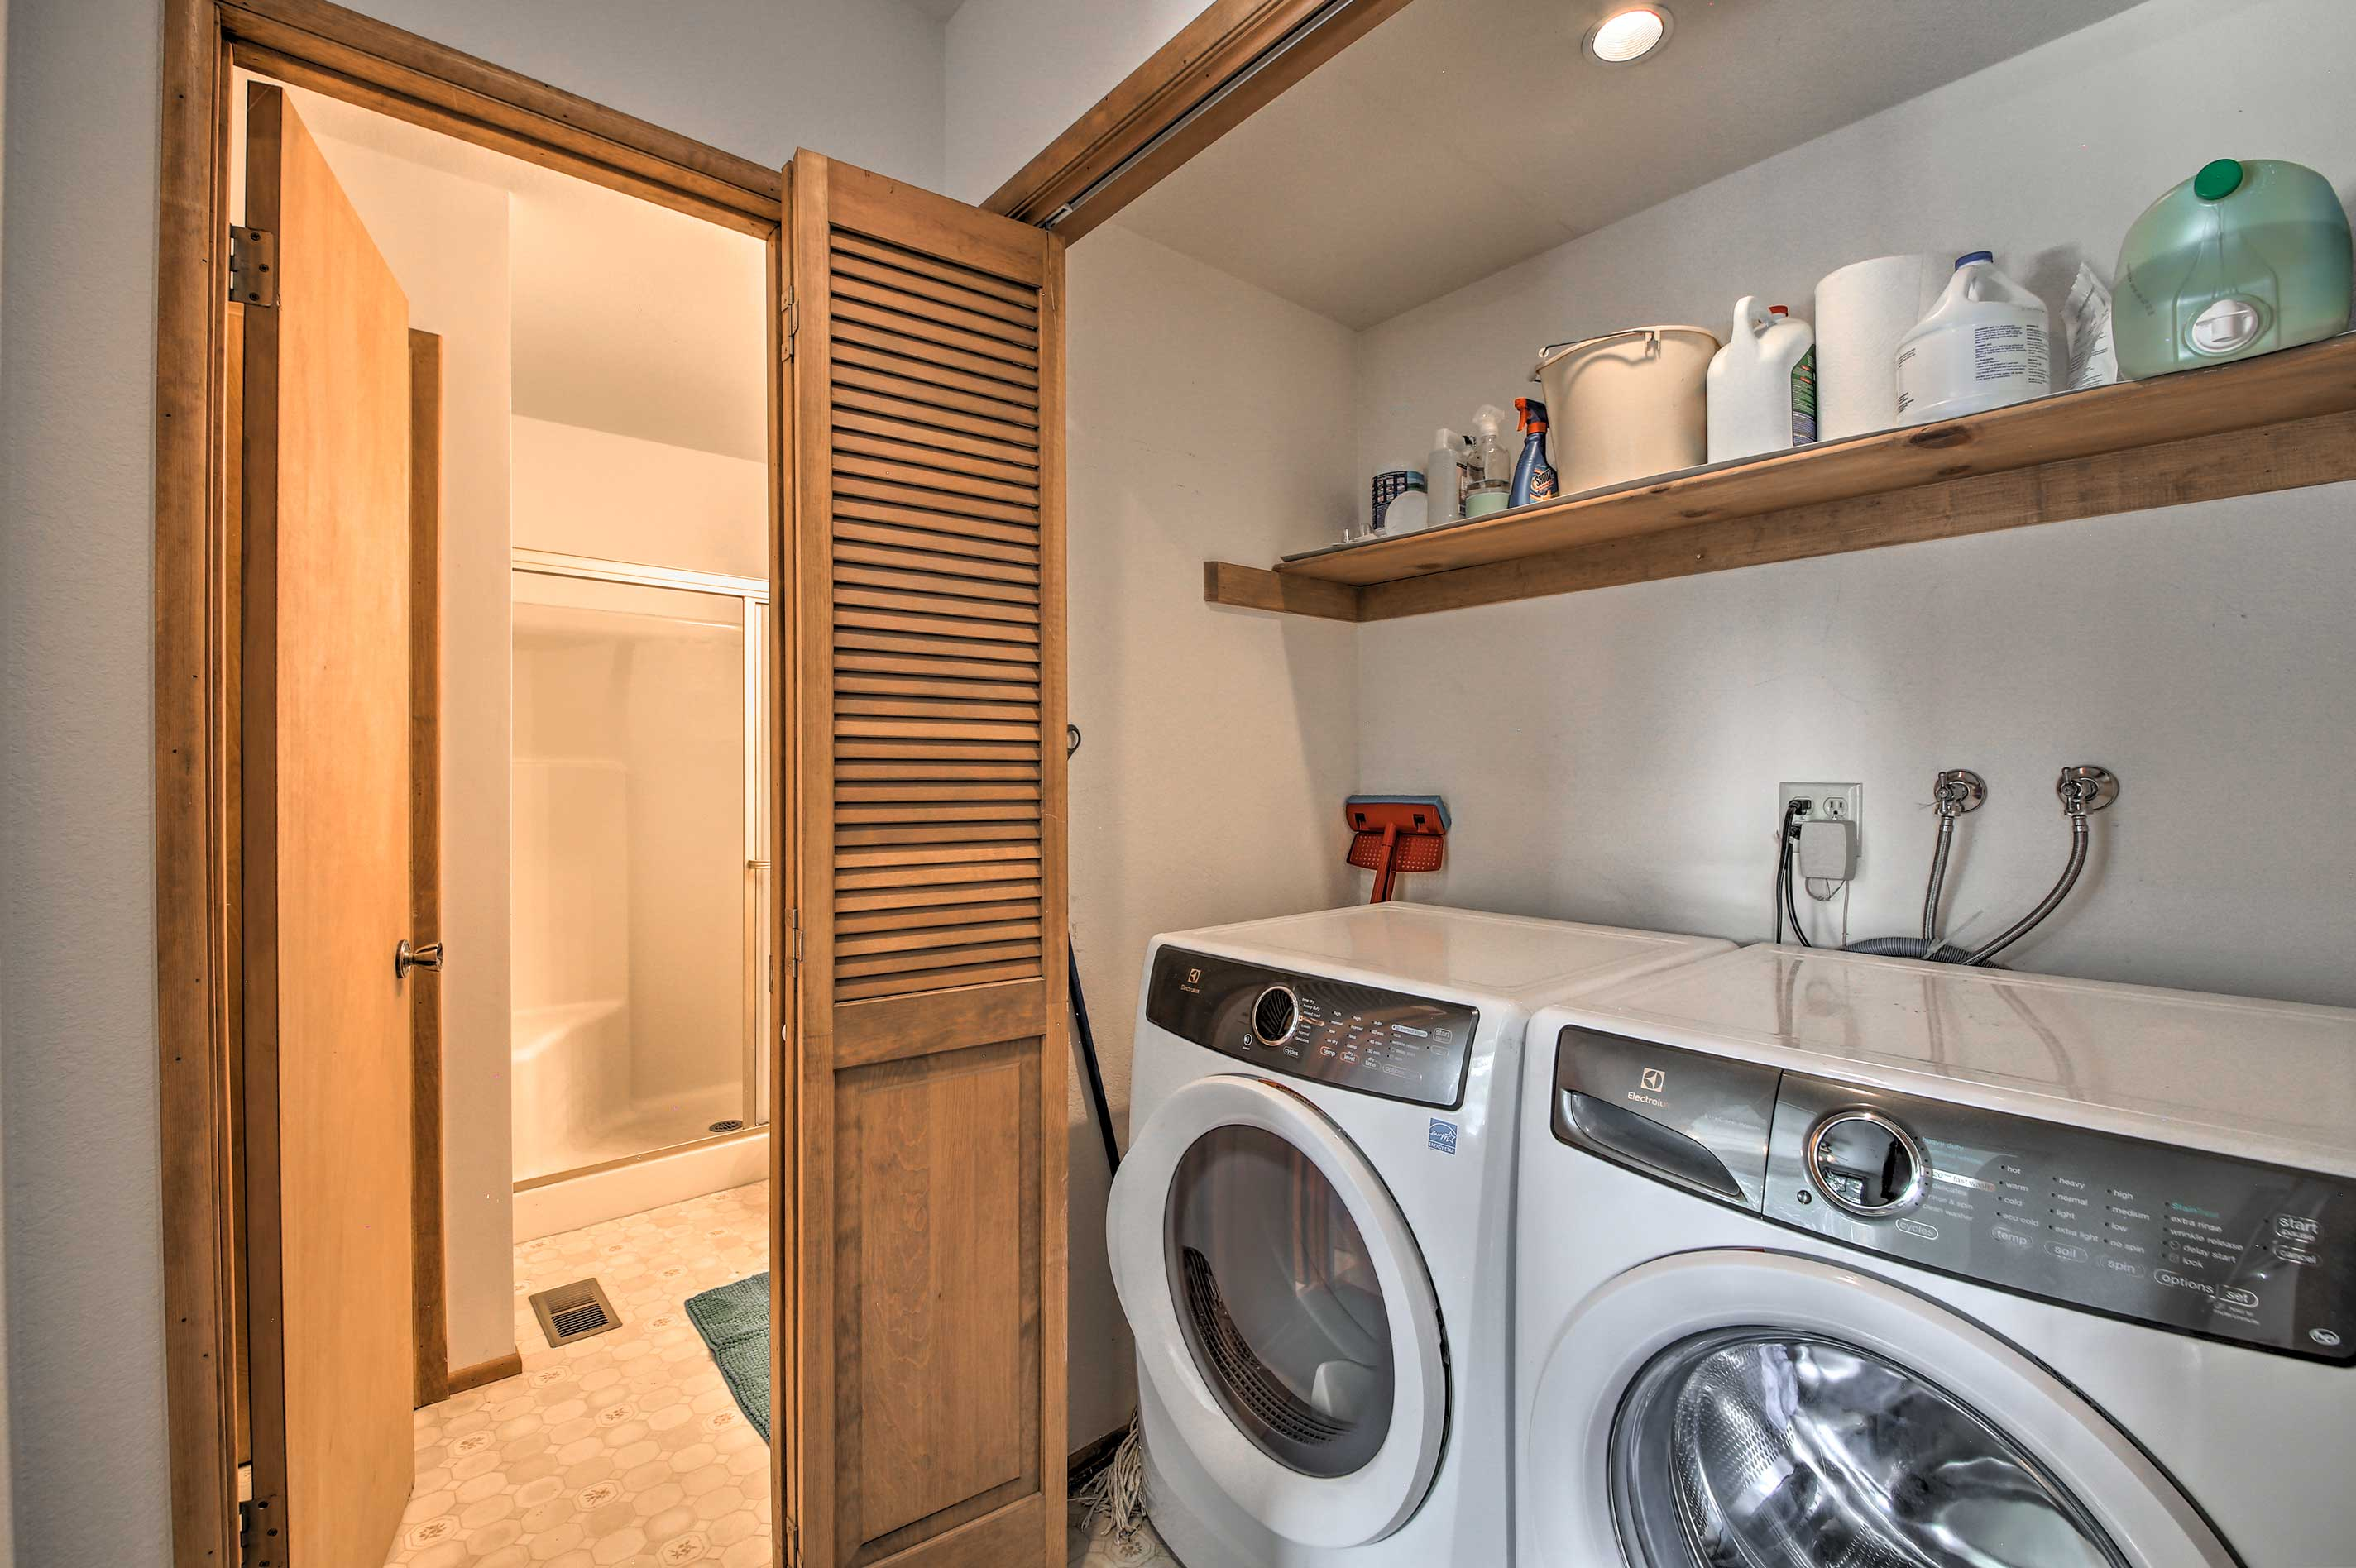 Let the washer and dryer take care of your clothes.